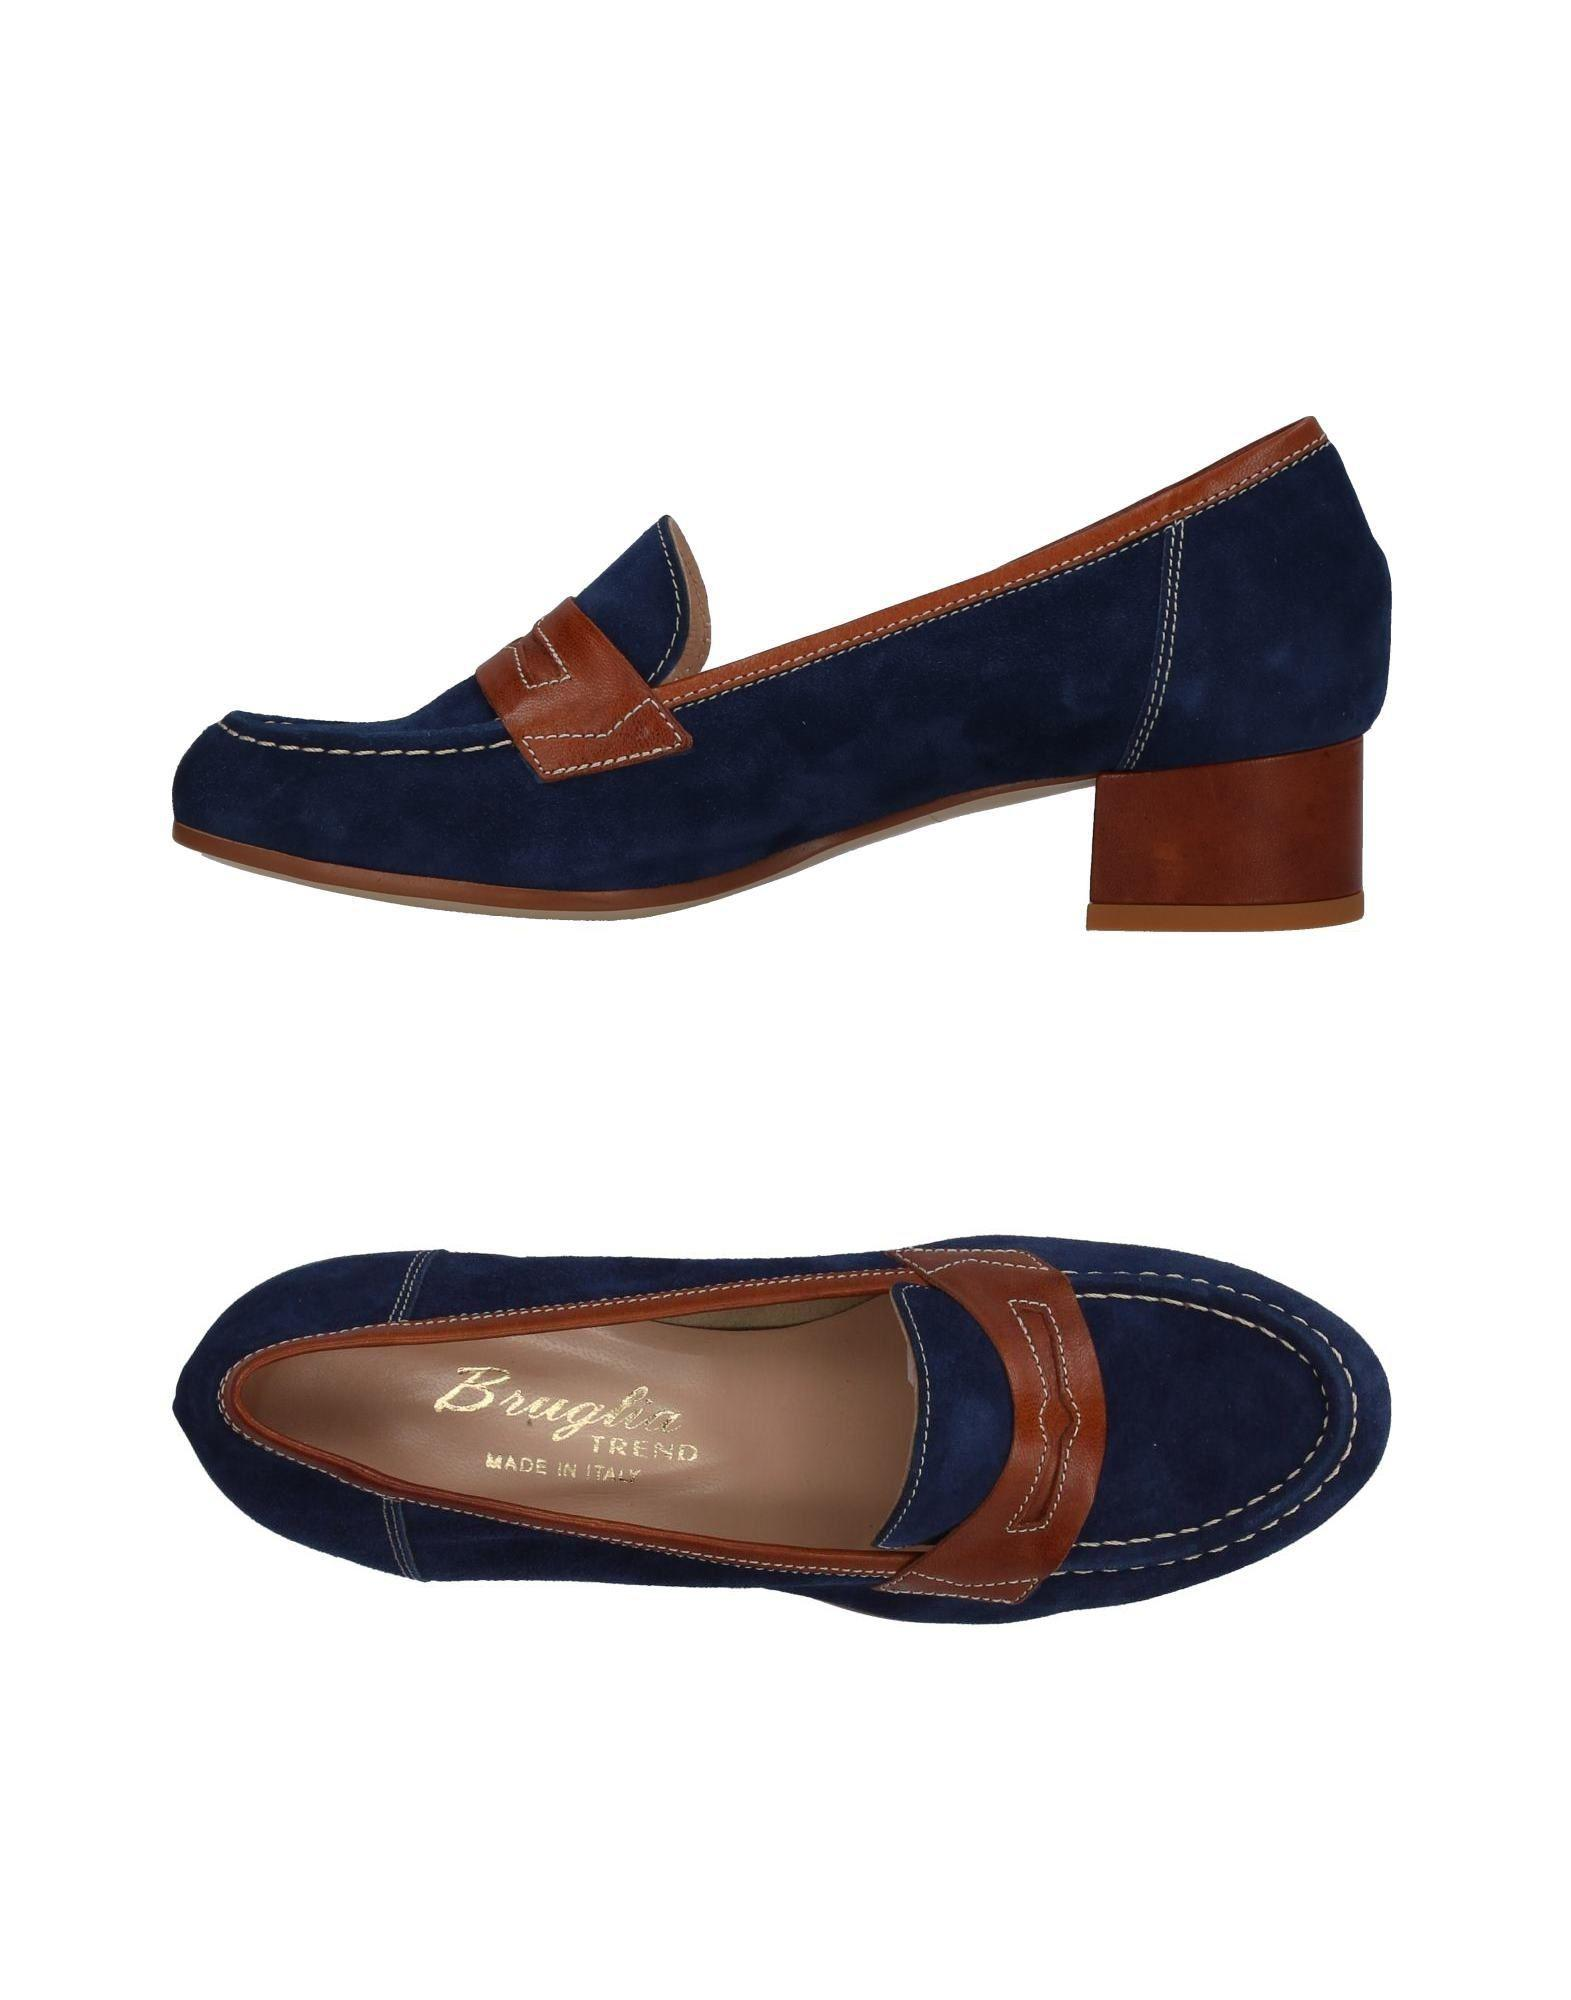 FOOTWEAR - Loafers Bruglia